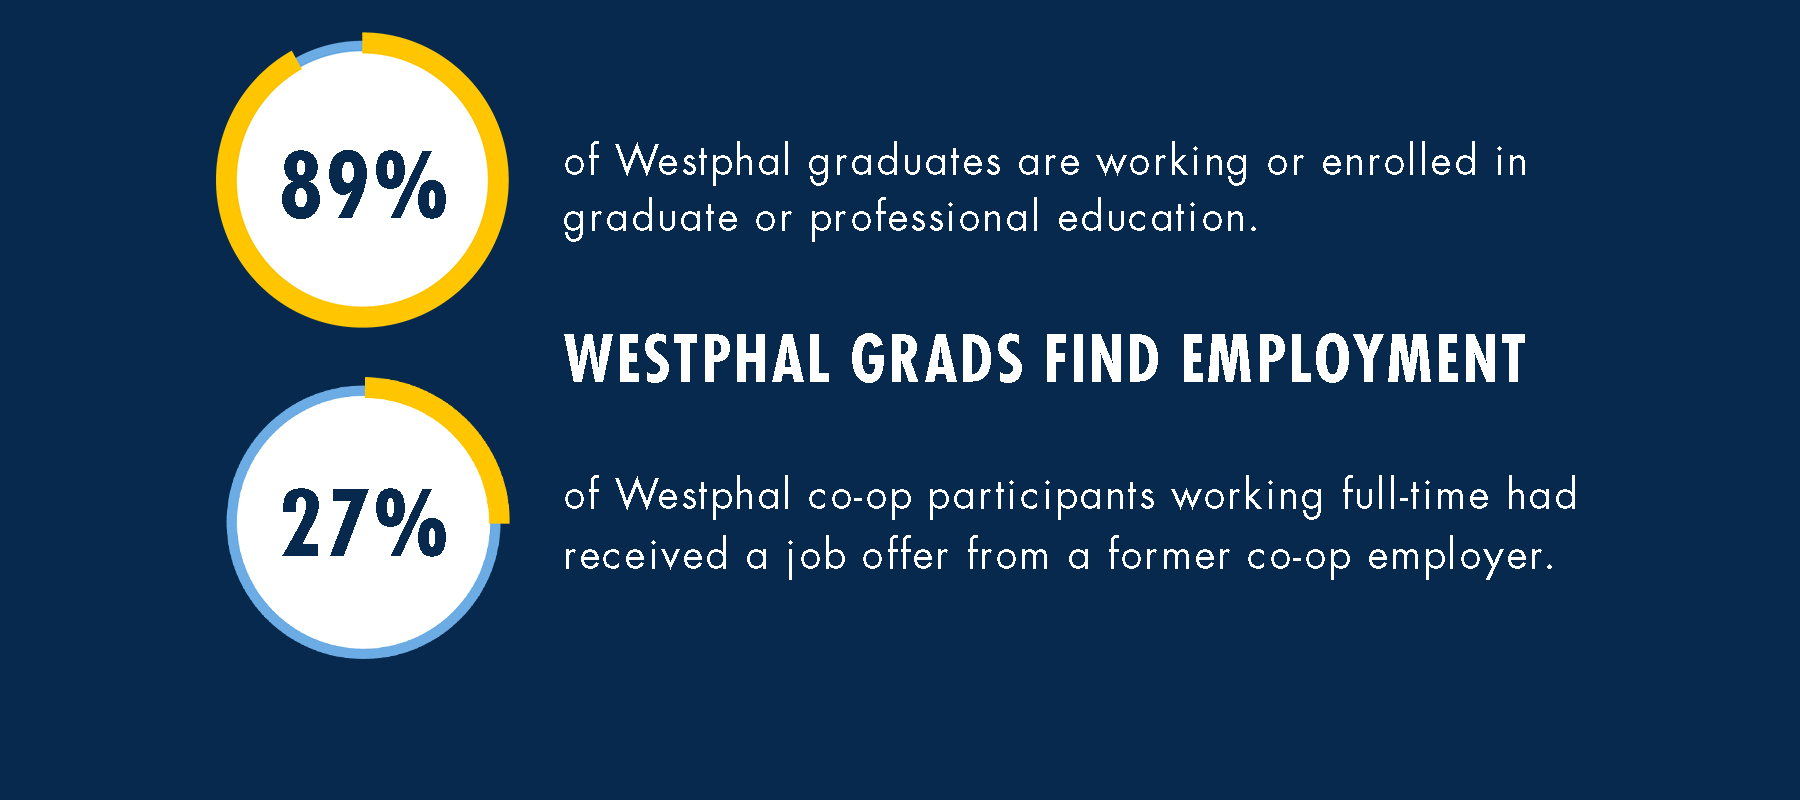 Drexel Westohal Employment Data